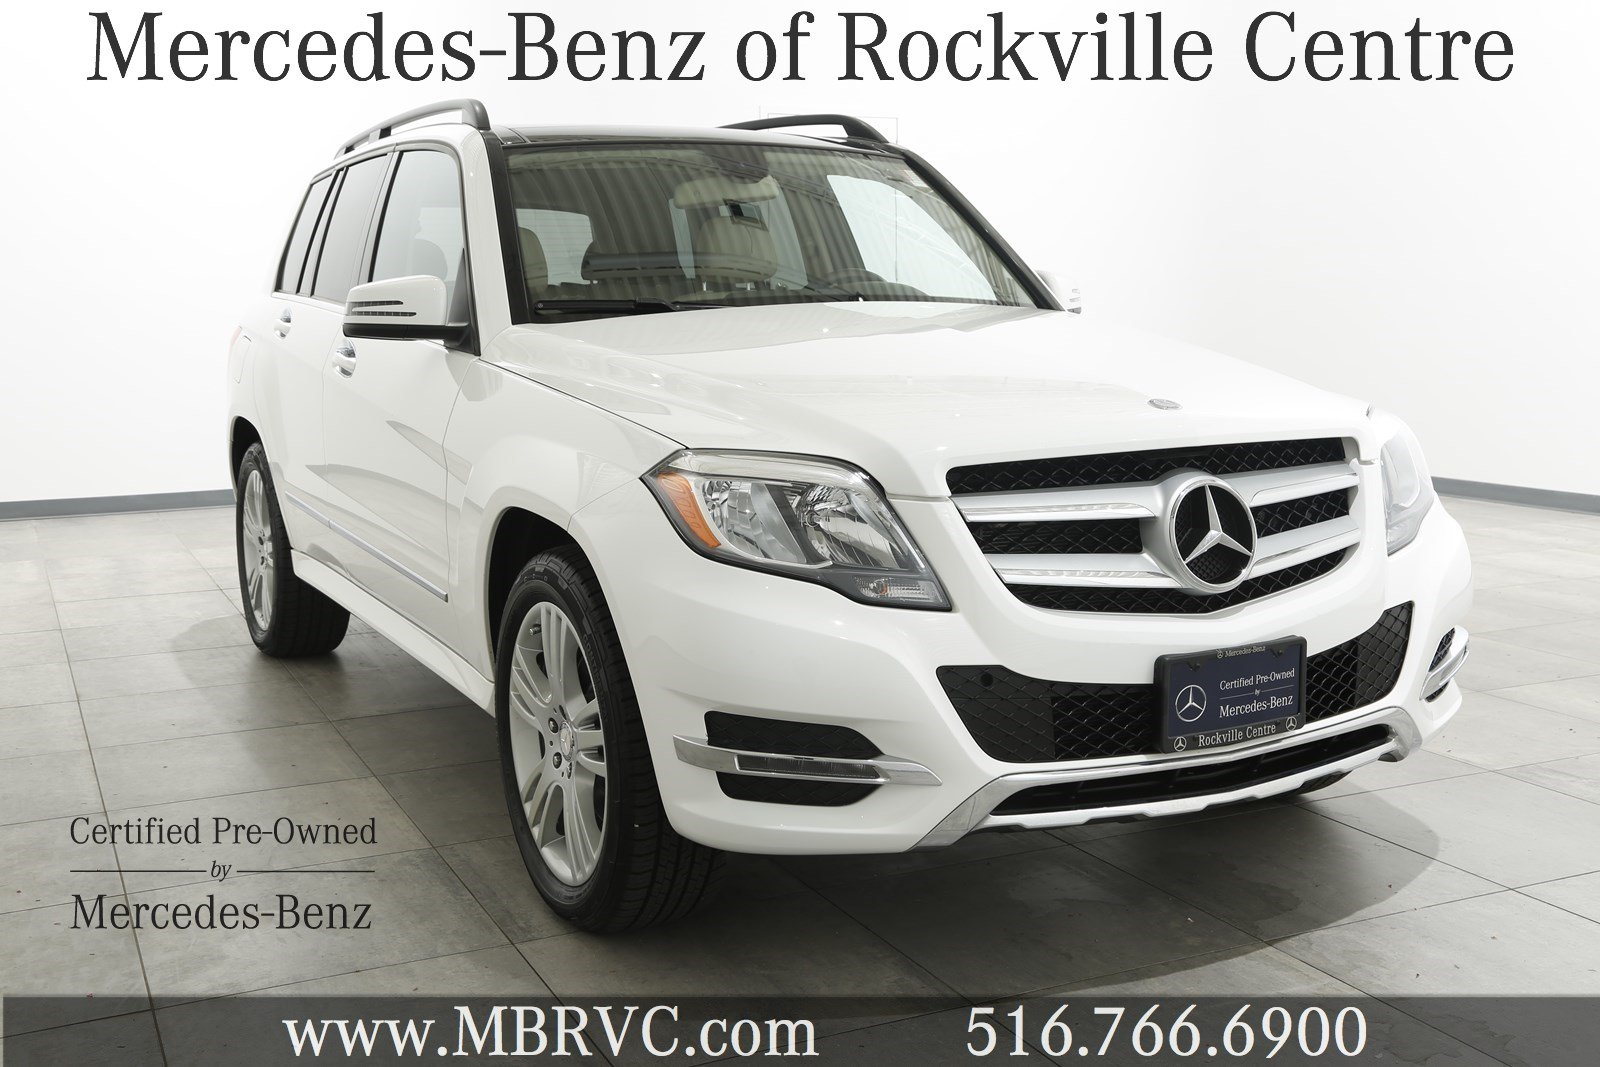 Certified pre owned 2014 mercedes benz glk glk 350 suv in for Mercedes benz rockville centre